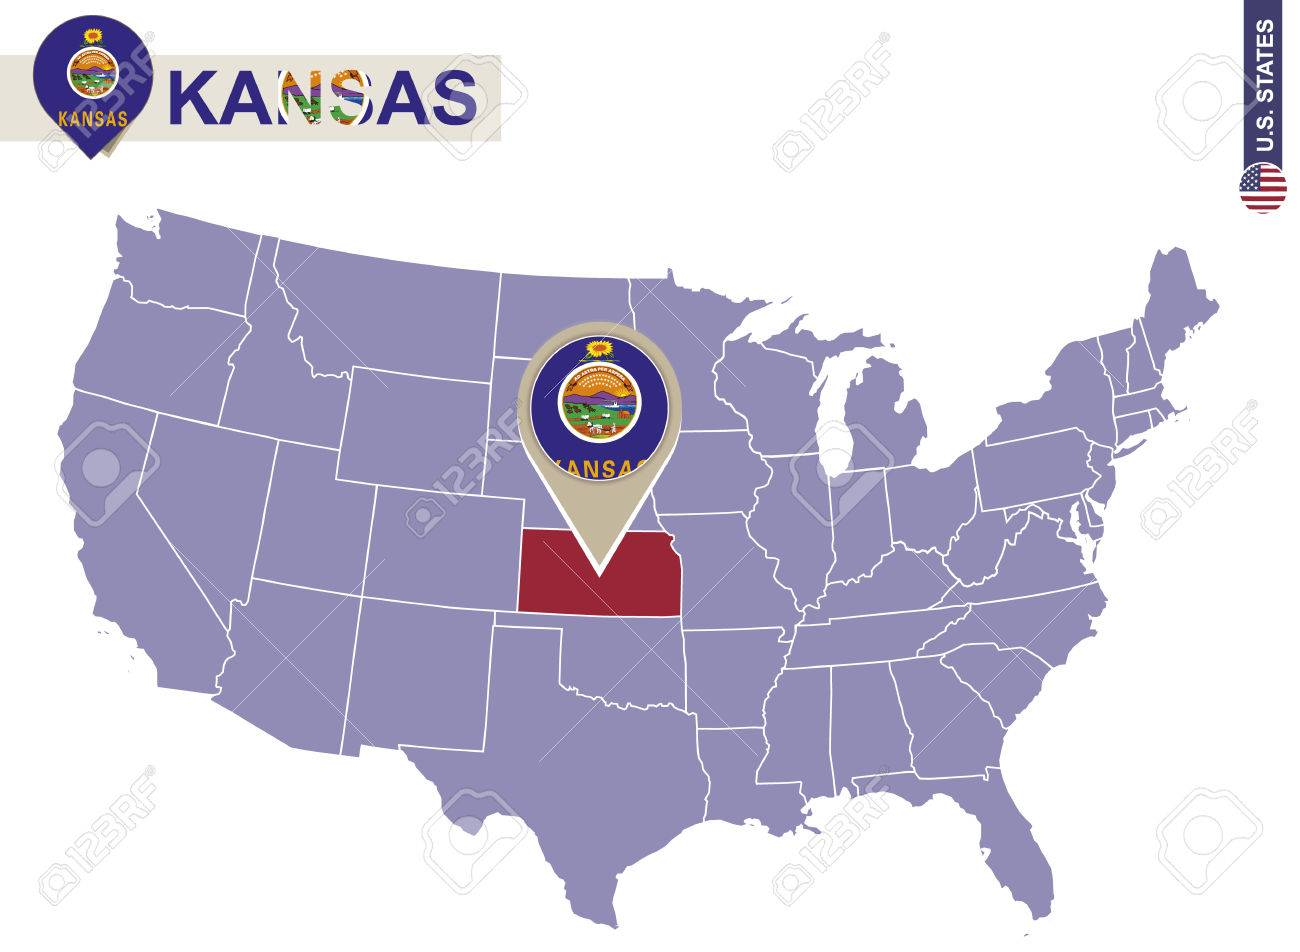 Kansas State On USA Map Kansas Flag And Map US States Royalty